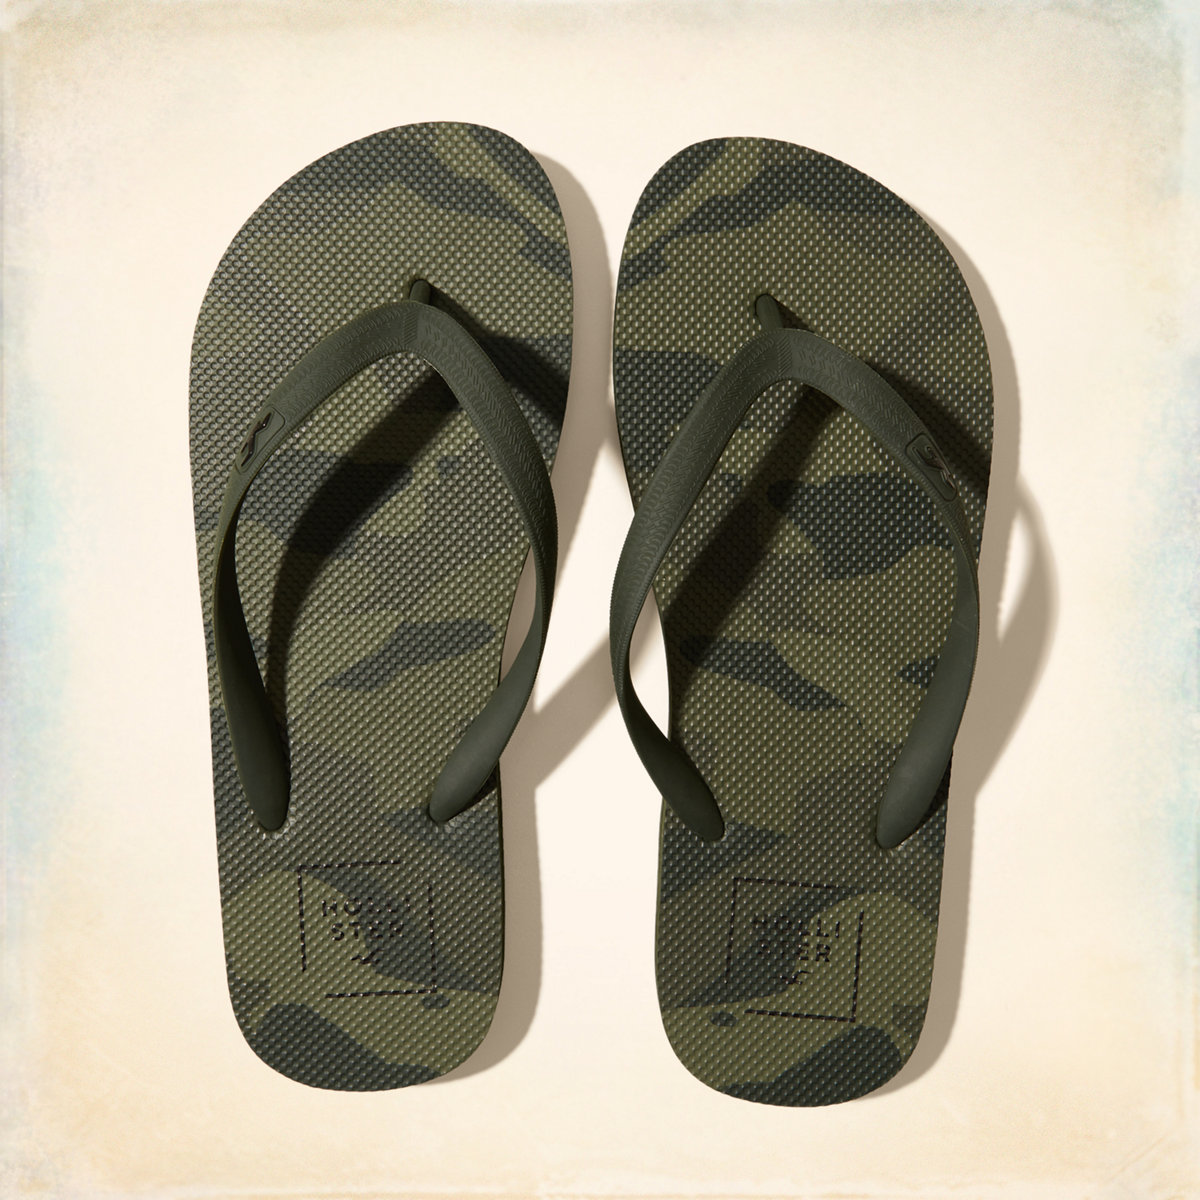 Graphic Rubber Flip Flops